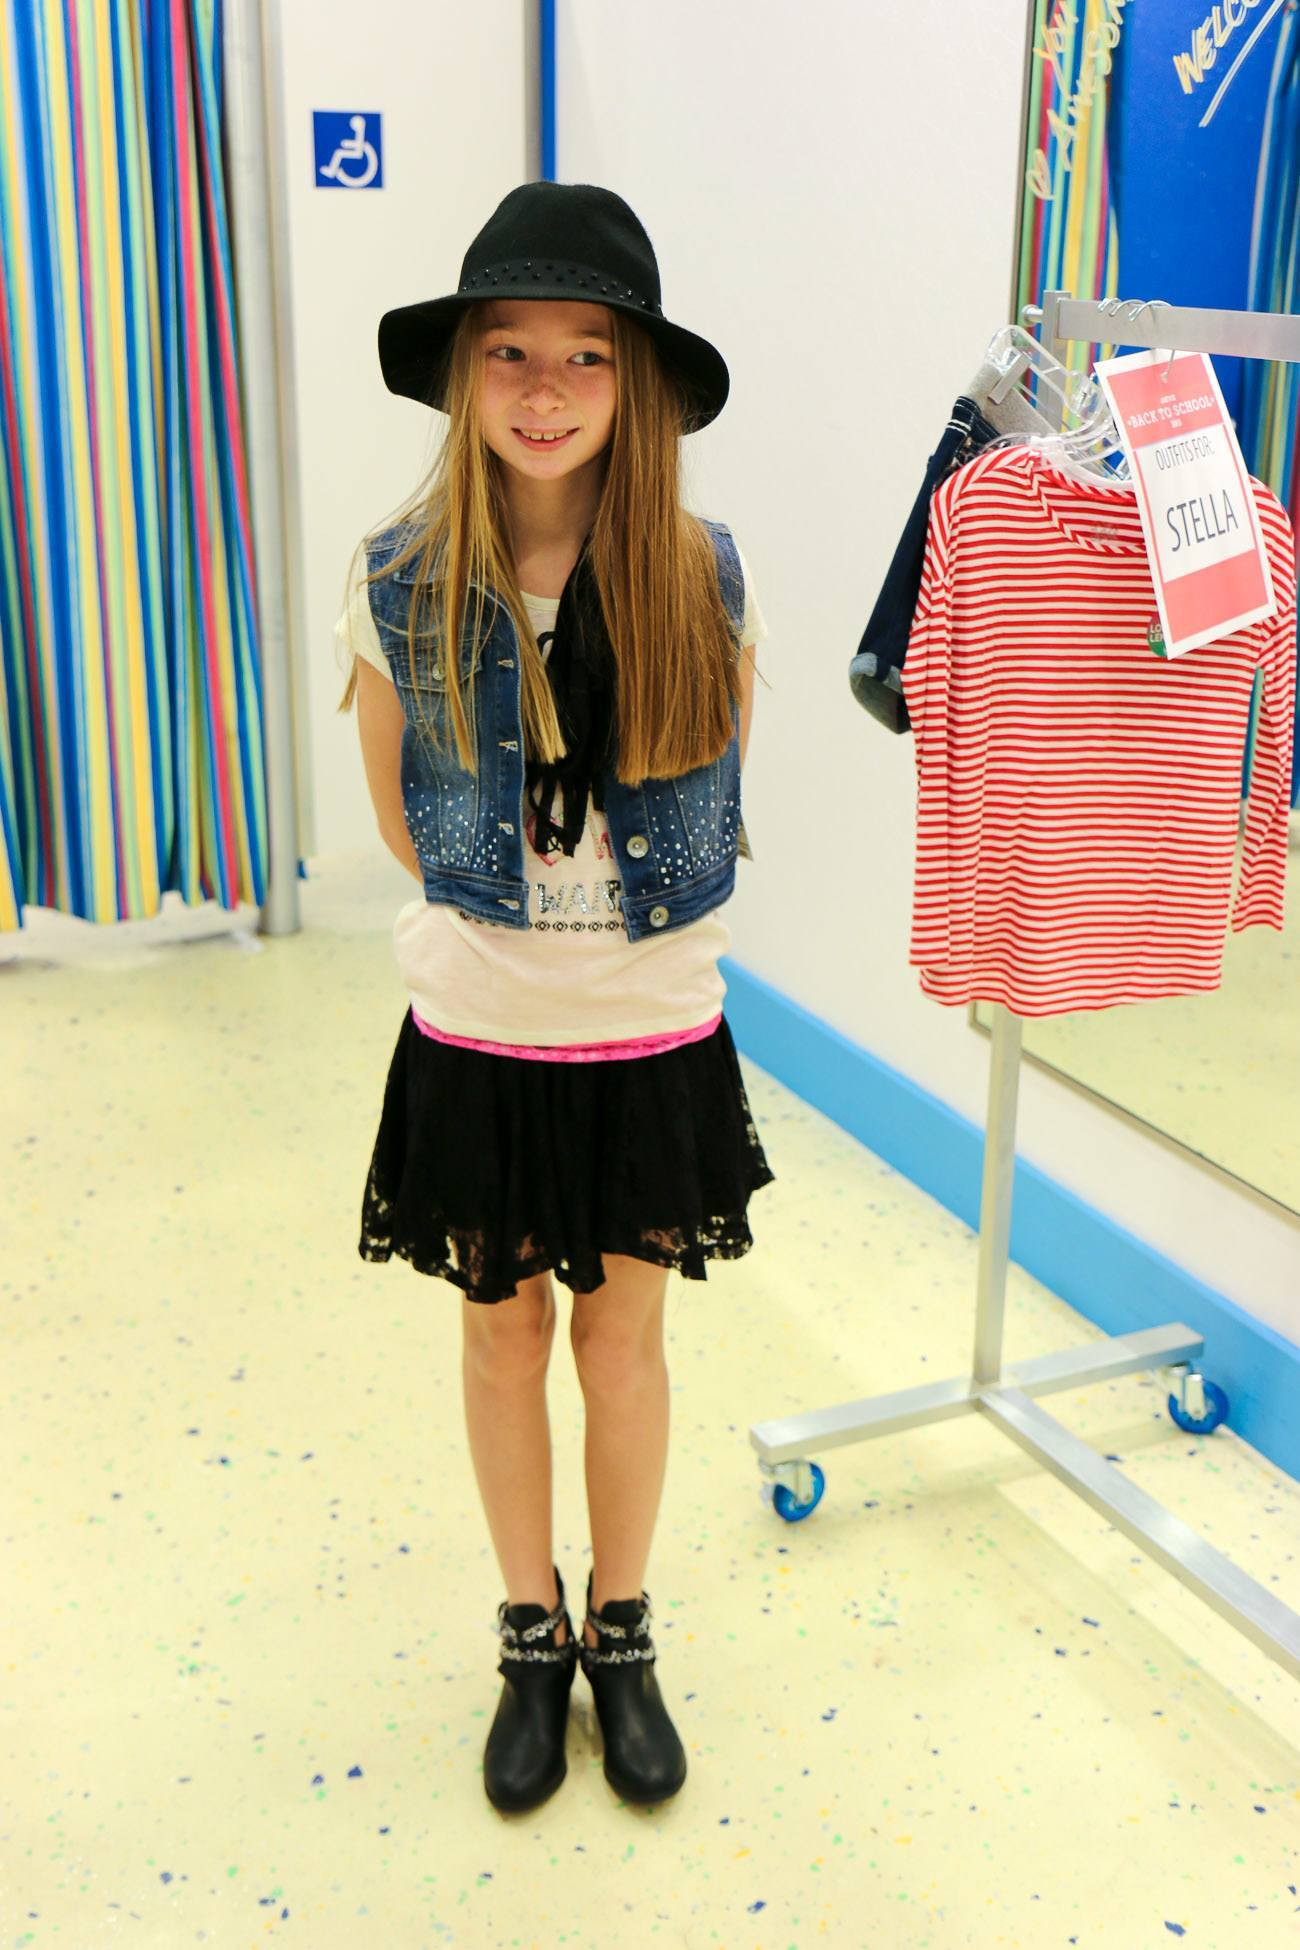 My daughter's favorite outfit from the Justice back-to-school fall line of clothes for girls